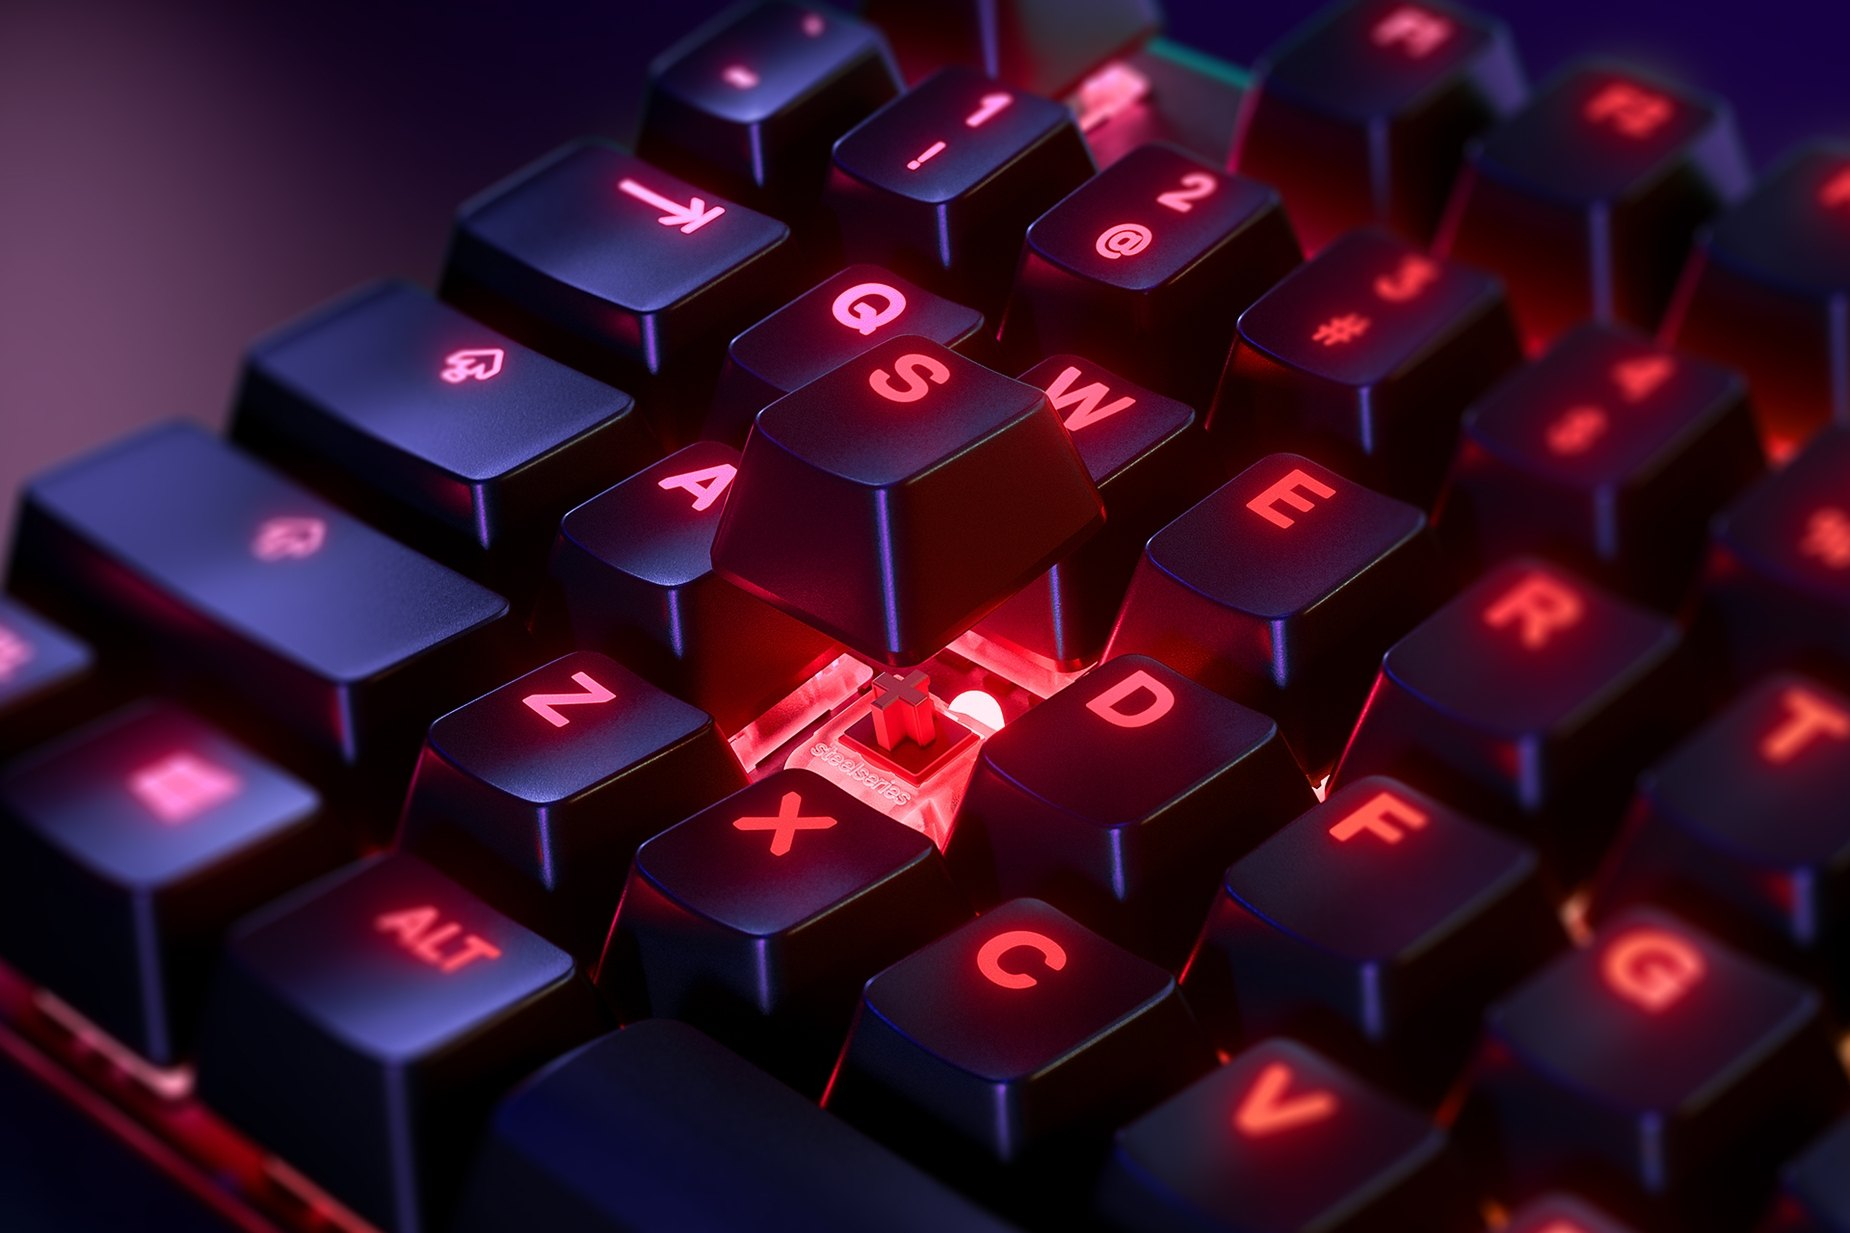 Zoomed in view of a single key on the Taiwanese-Apex 7 (Red Switch) gaming keyboard, the key is raised up to show the SteelSeries QX2 Mechanical RGB Switch underneath